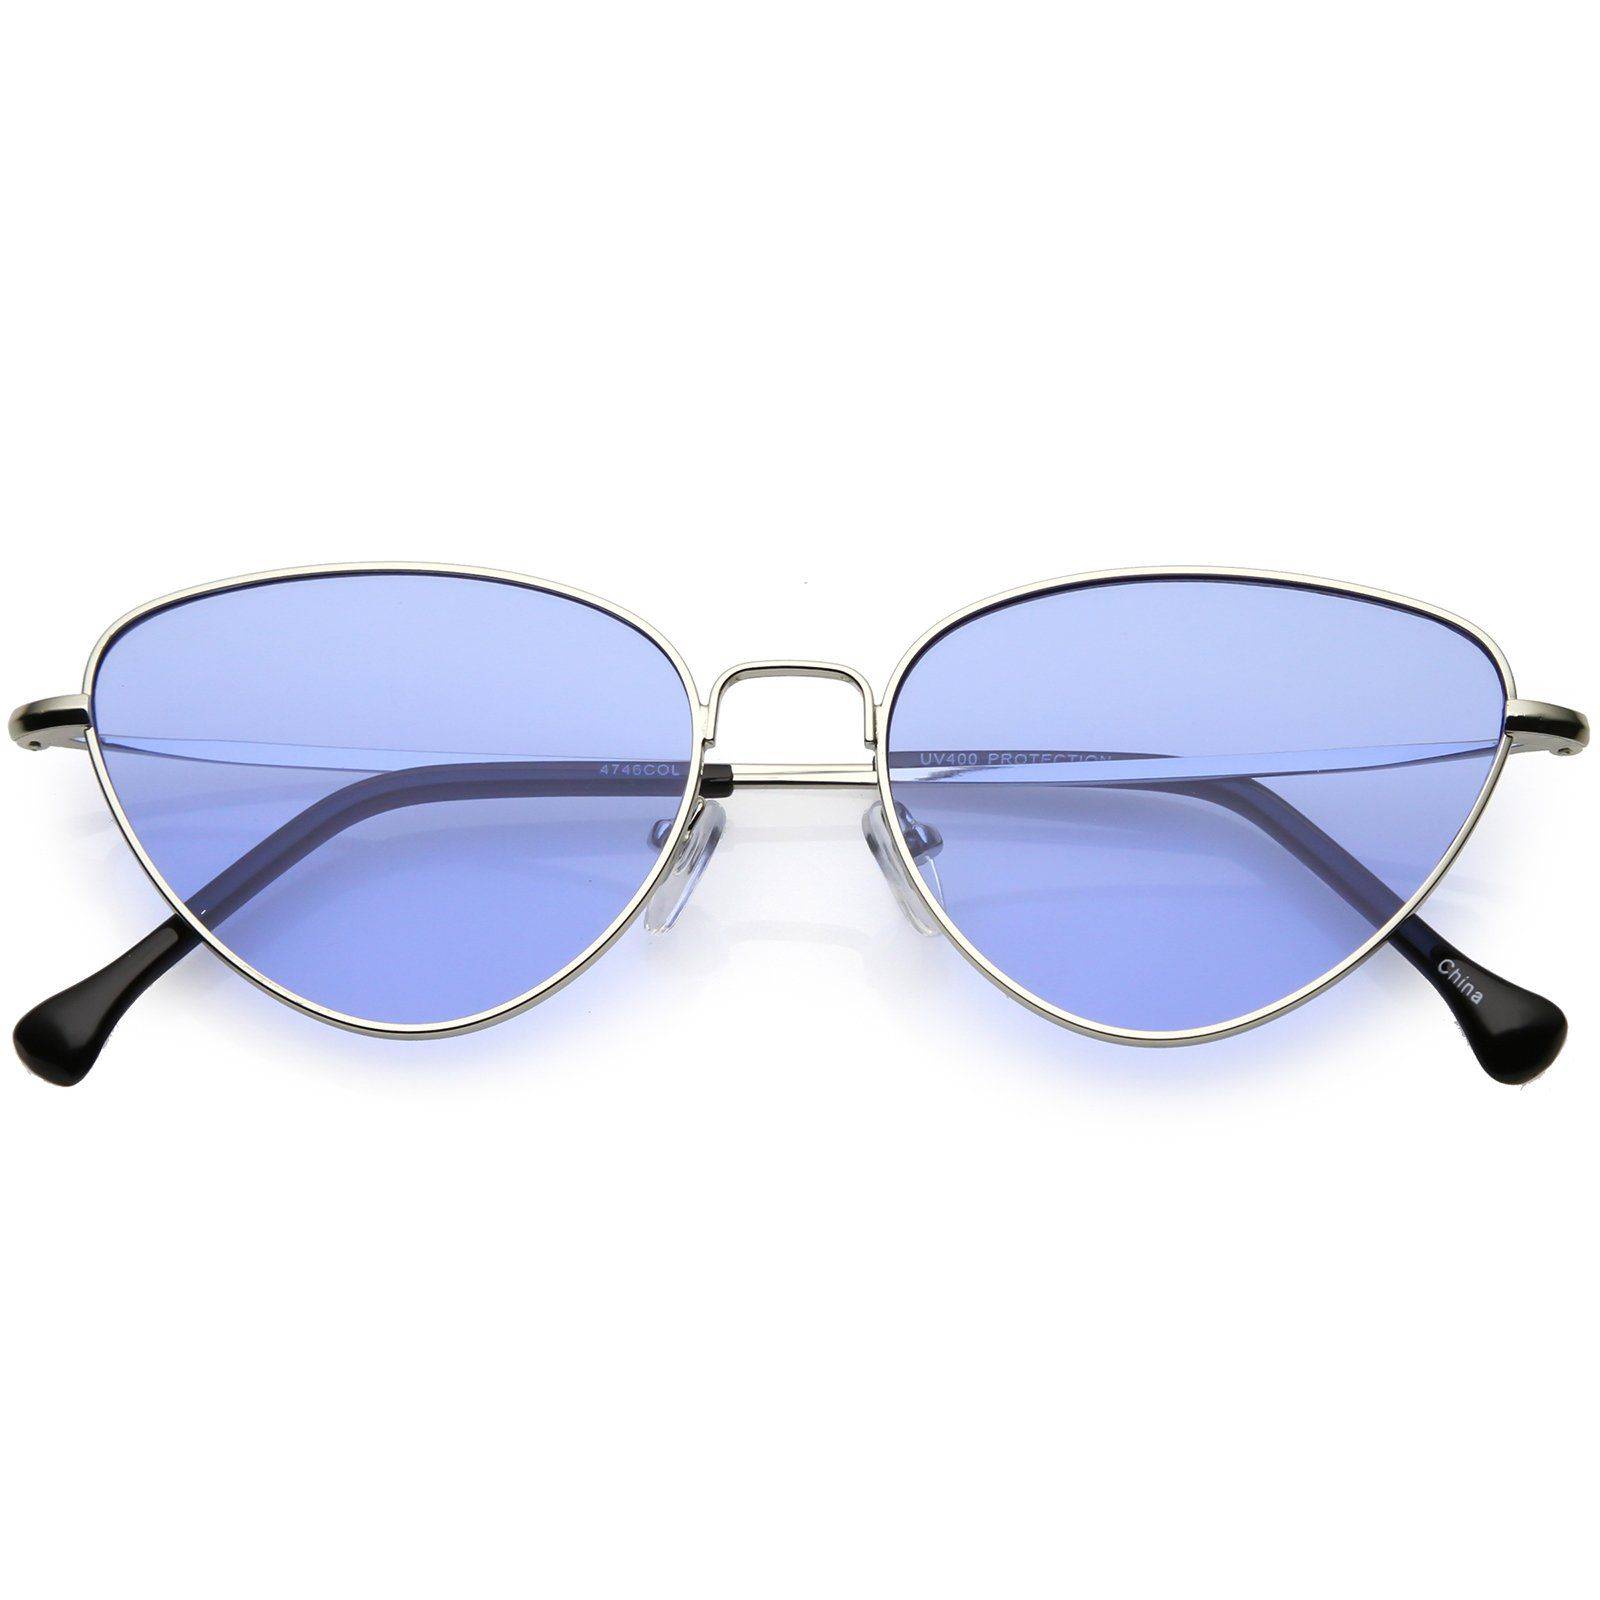 8a68b882c1 Women s Slim Metal Cat Eye Sunglasses Color Tinted Flat Lens 54mm  sunglass   sunglasses